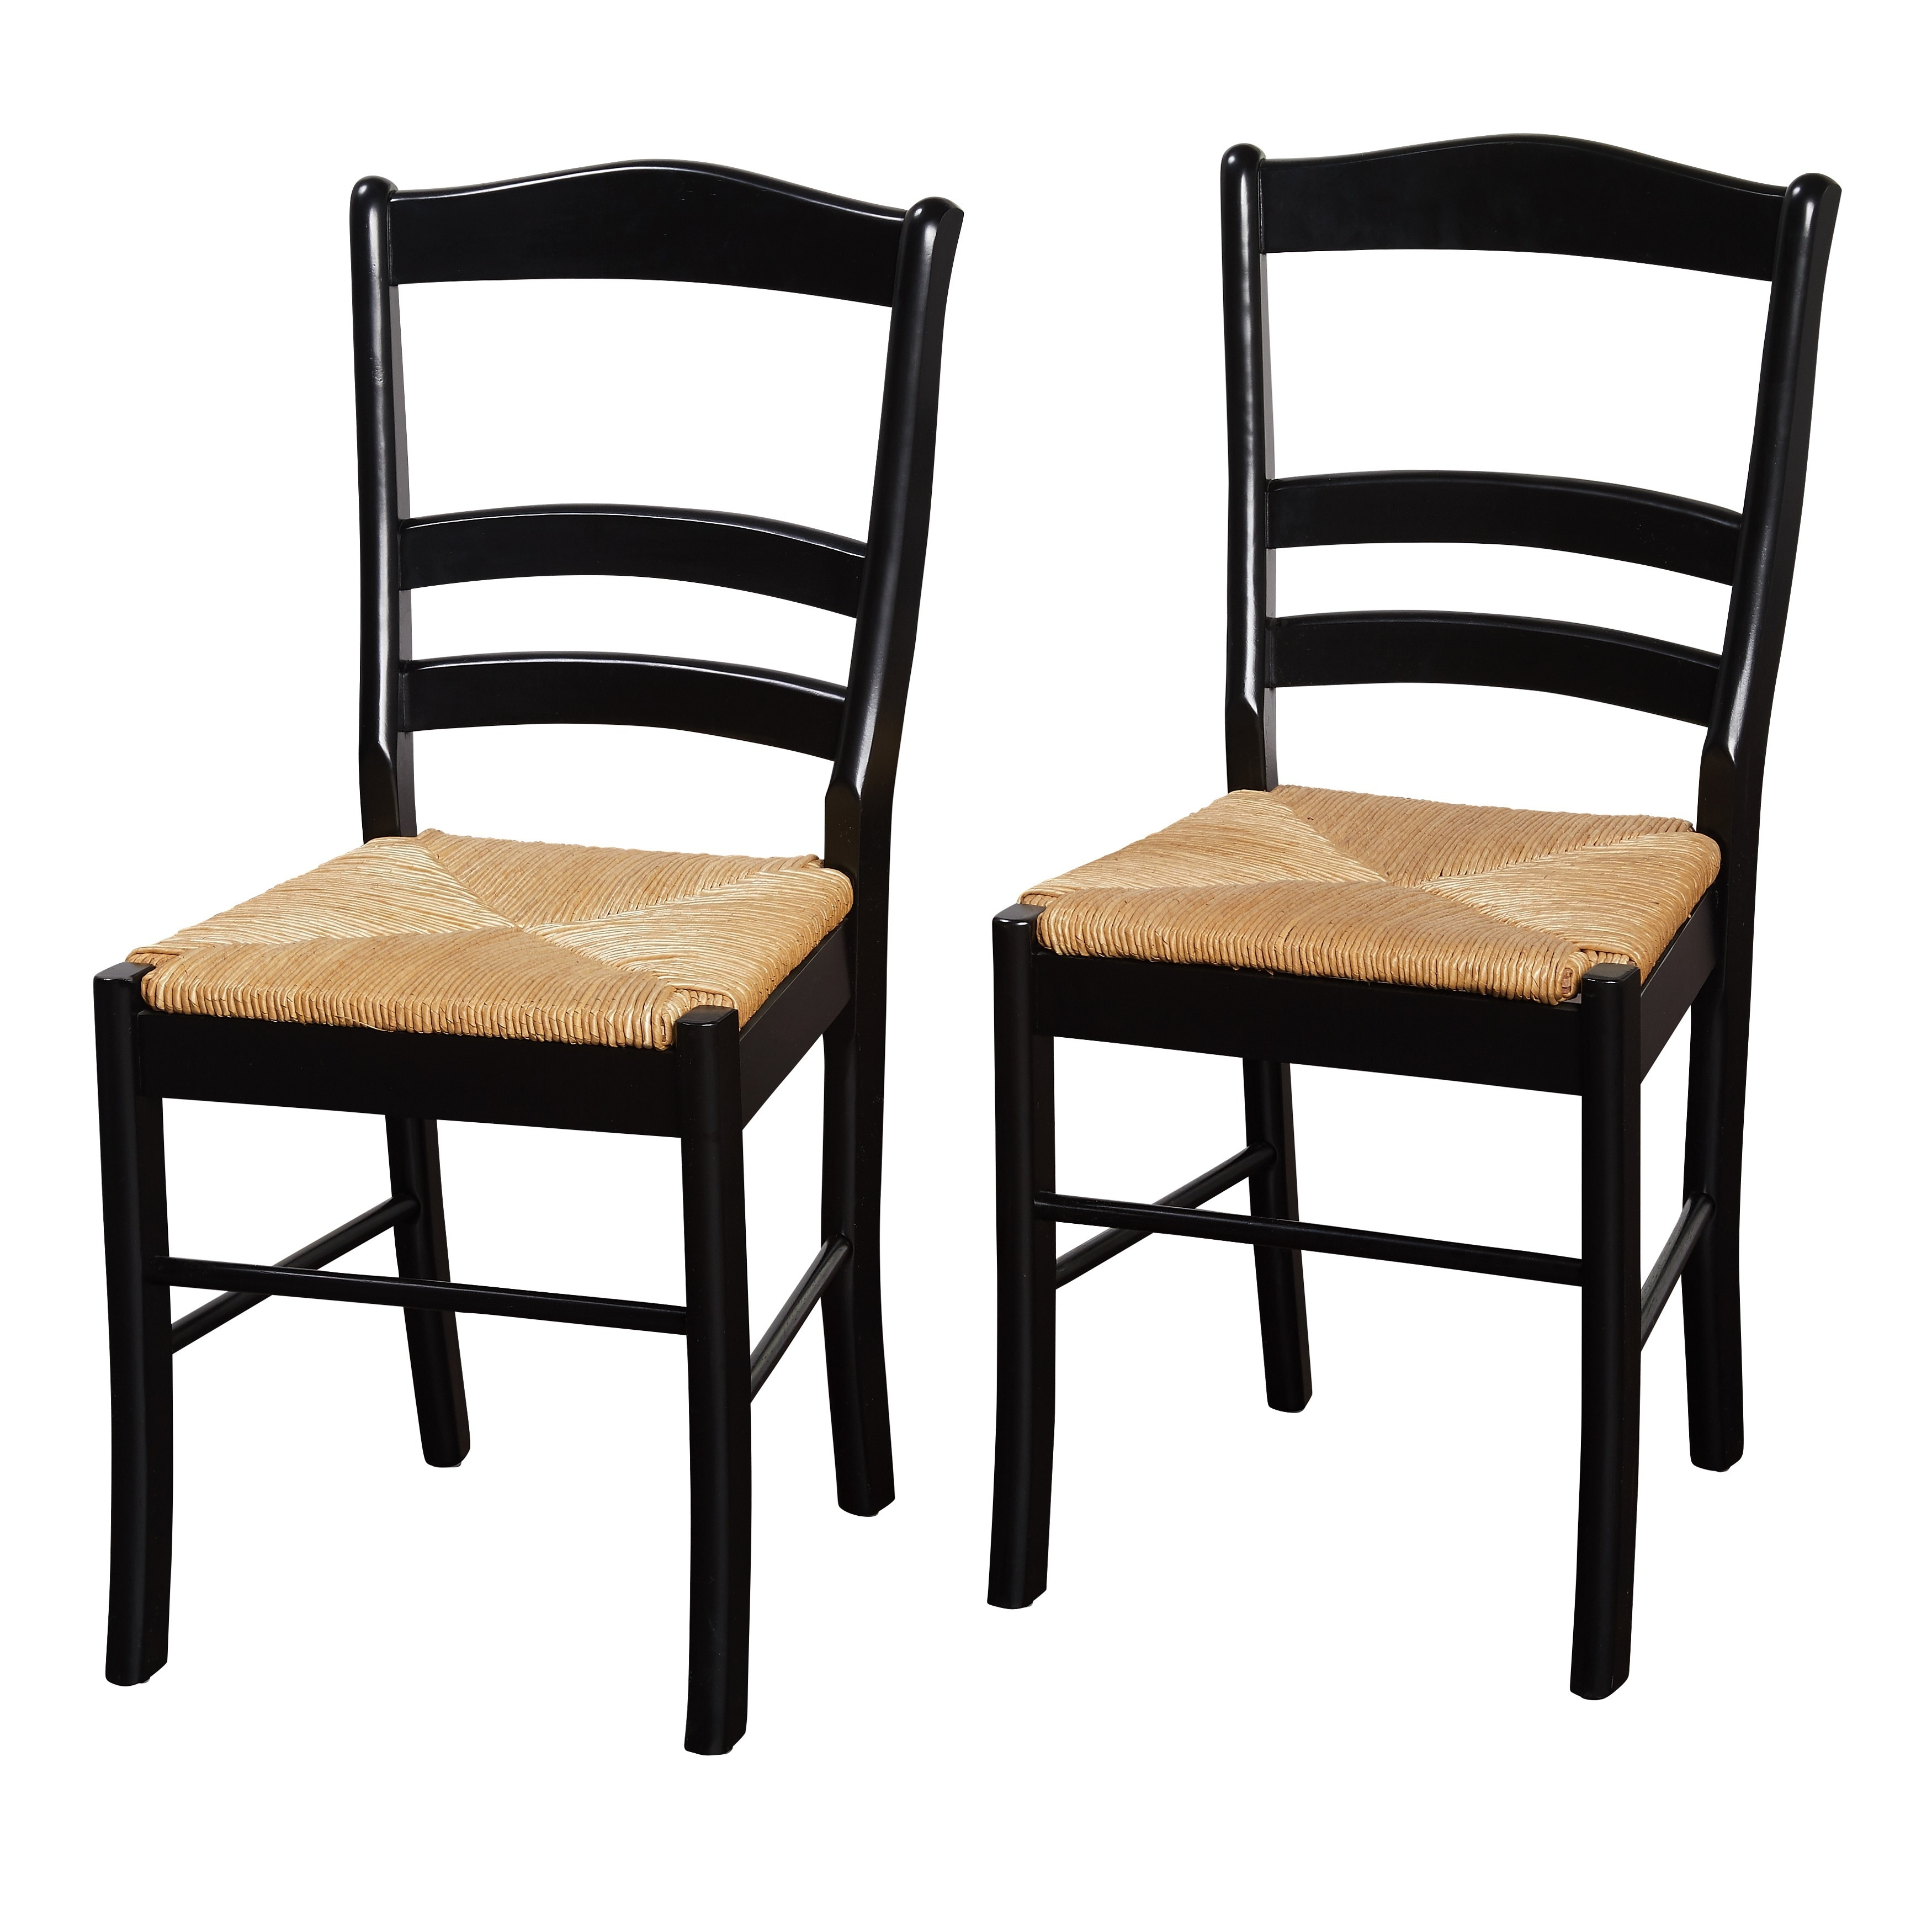 Chairs For Less Kitchen And Dining Room Chairs For Less Overstock